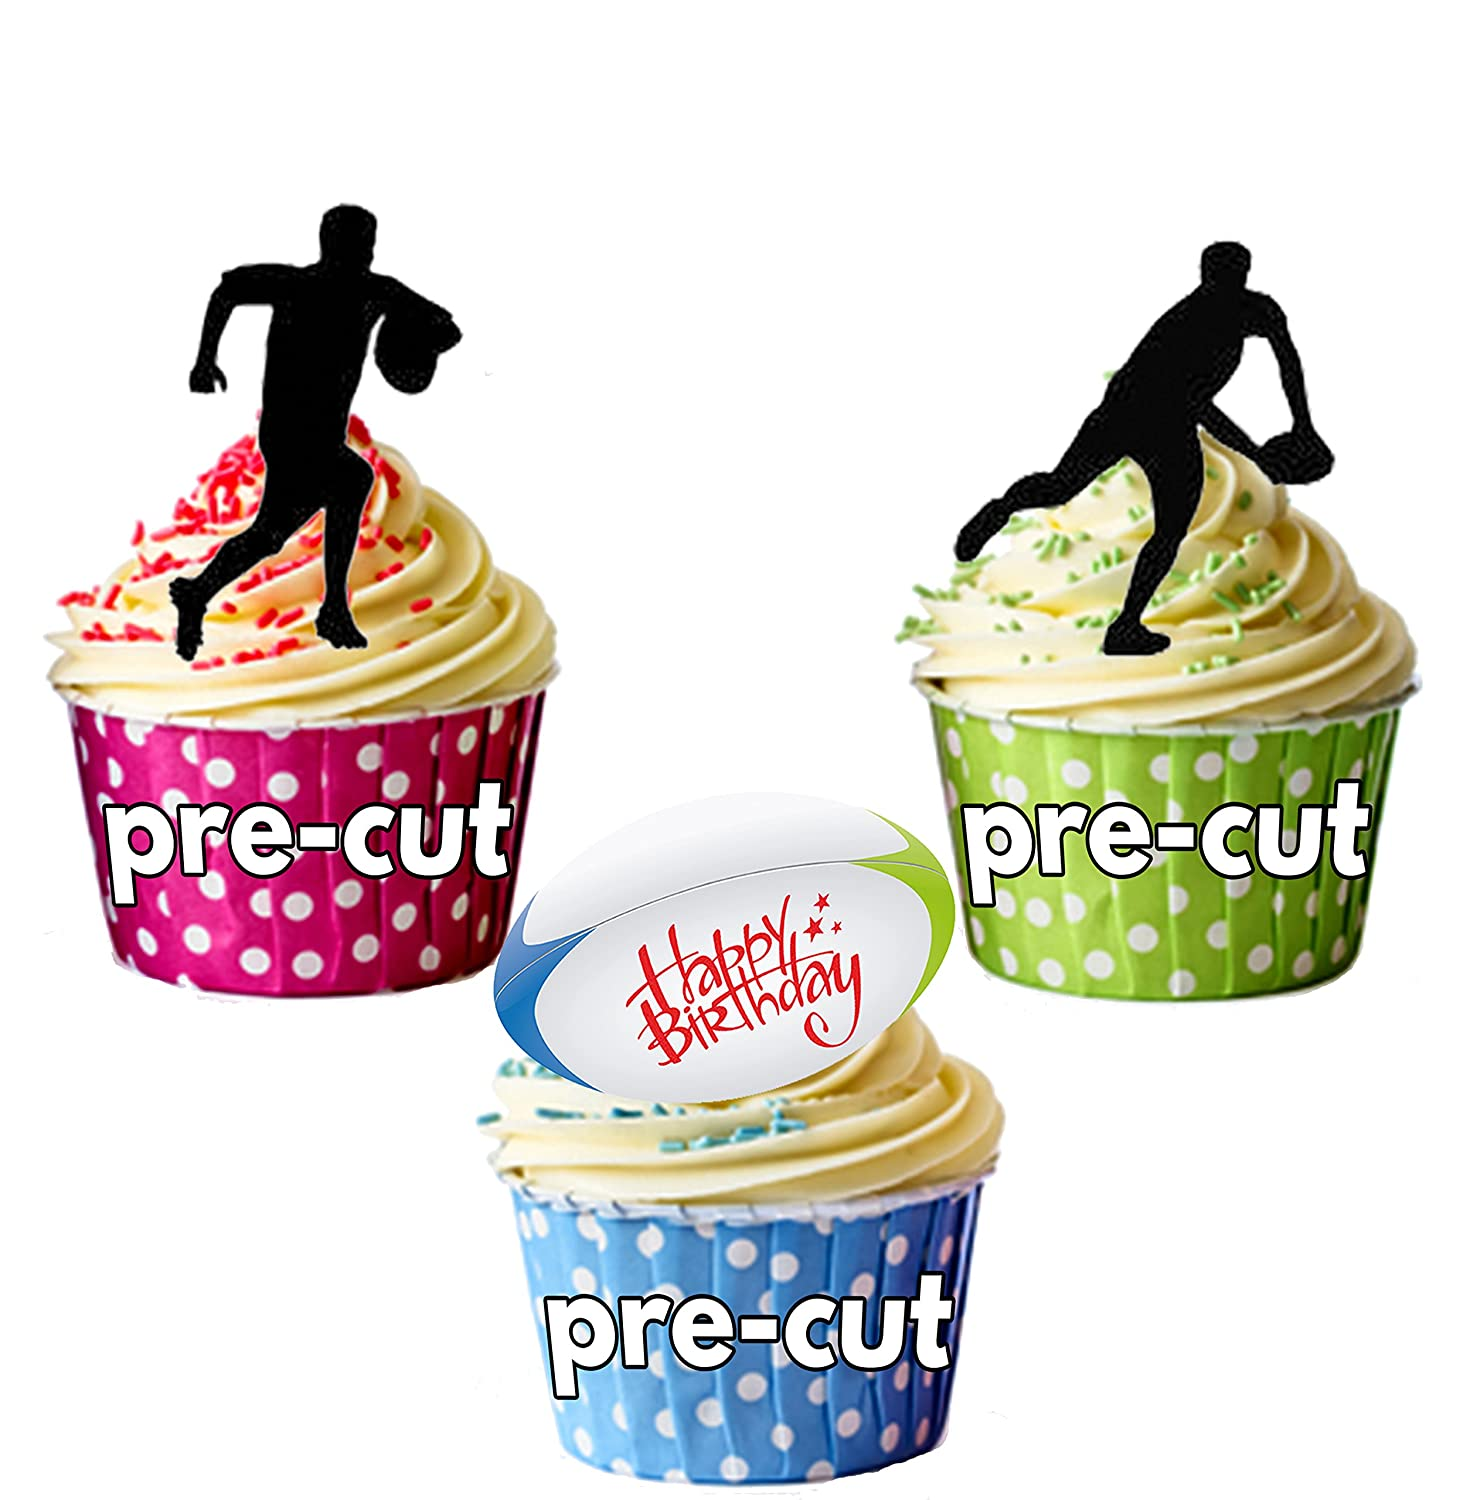 PRECUT Happy Birthday Silhouette Rugby Players Edible Cupcake Toppers Cake Decorations Pack Of 12 Amazoncouk Kitchen Home